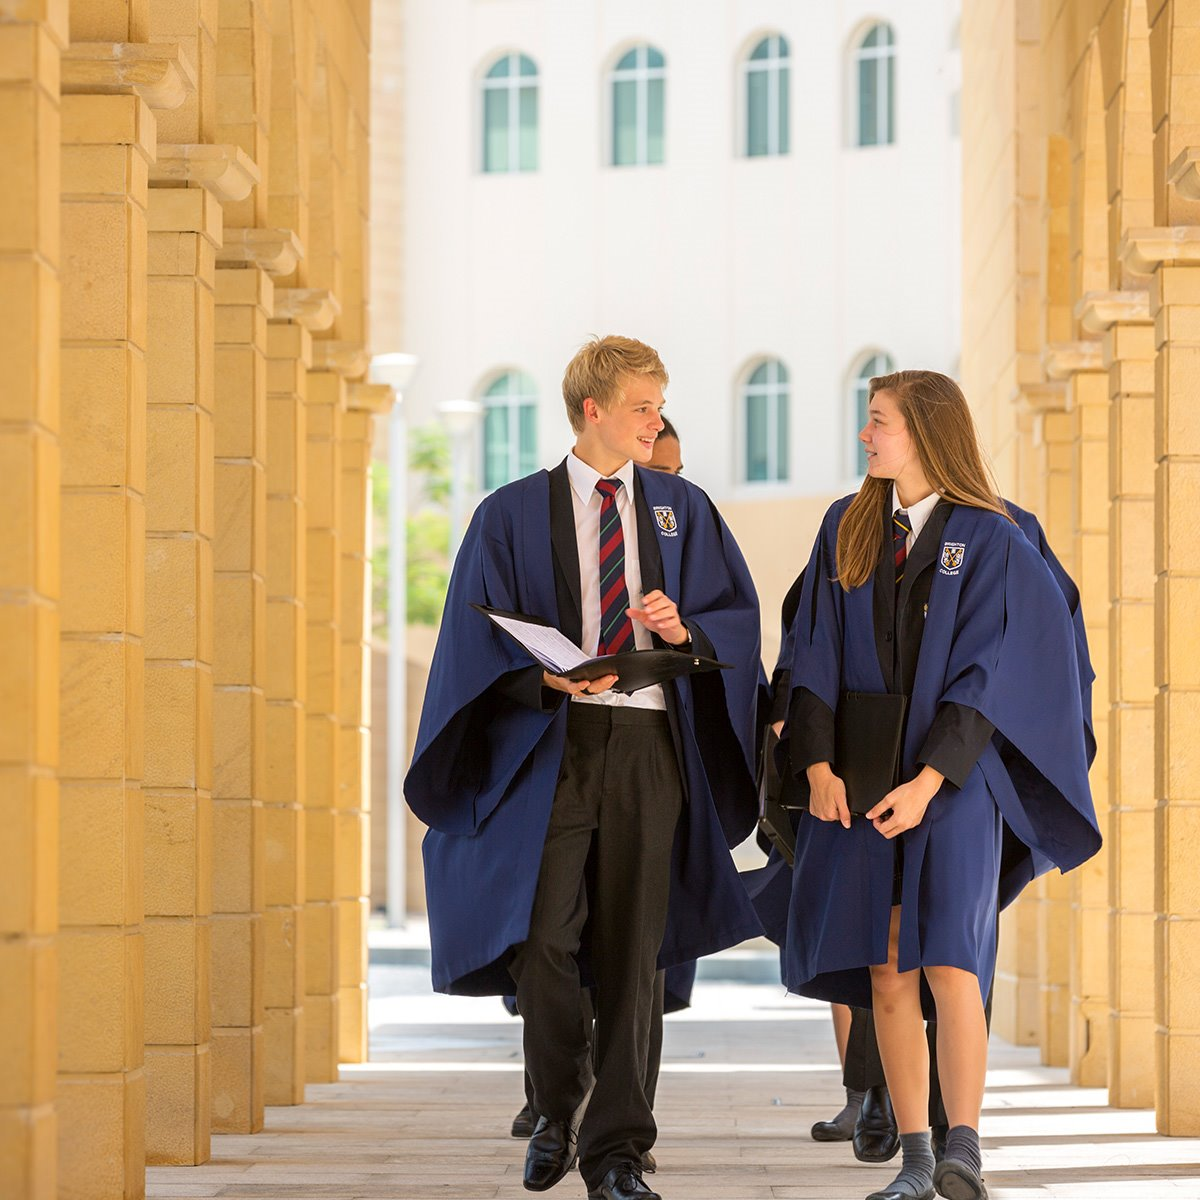 Prefects-at-Brighton-College-Abu-Dhabi.jpg